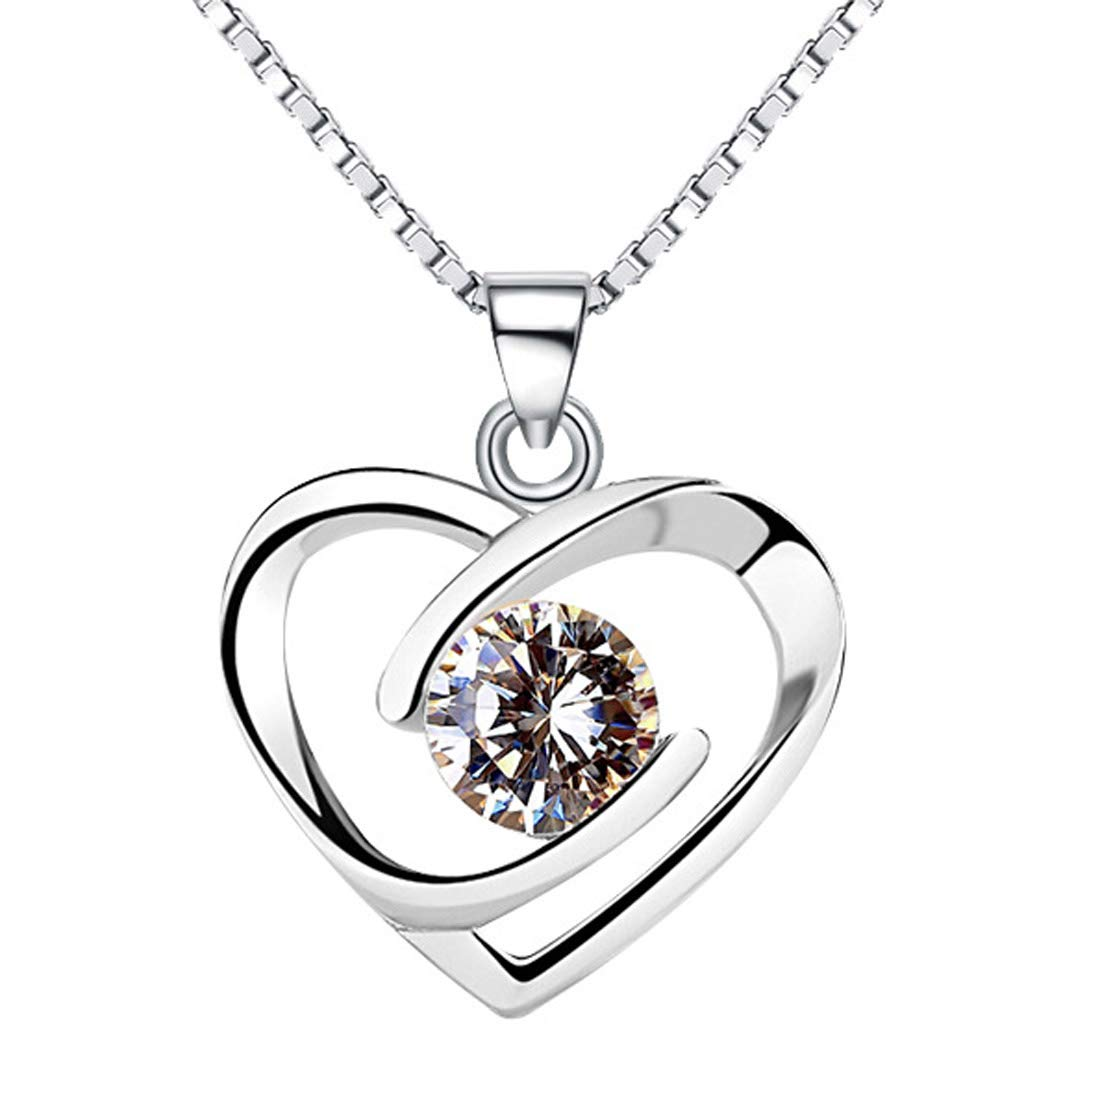 Sterling Silver You Hold My Heart Forever Cubic Zirconia Pendant Enhancer Chain Women Girls by Chaomingzhen